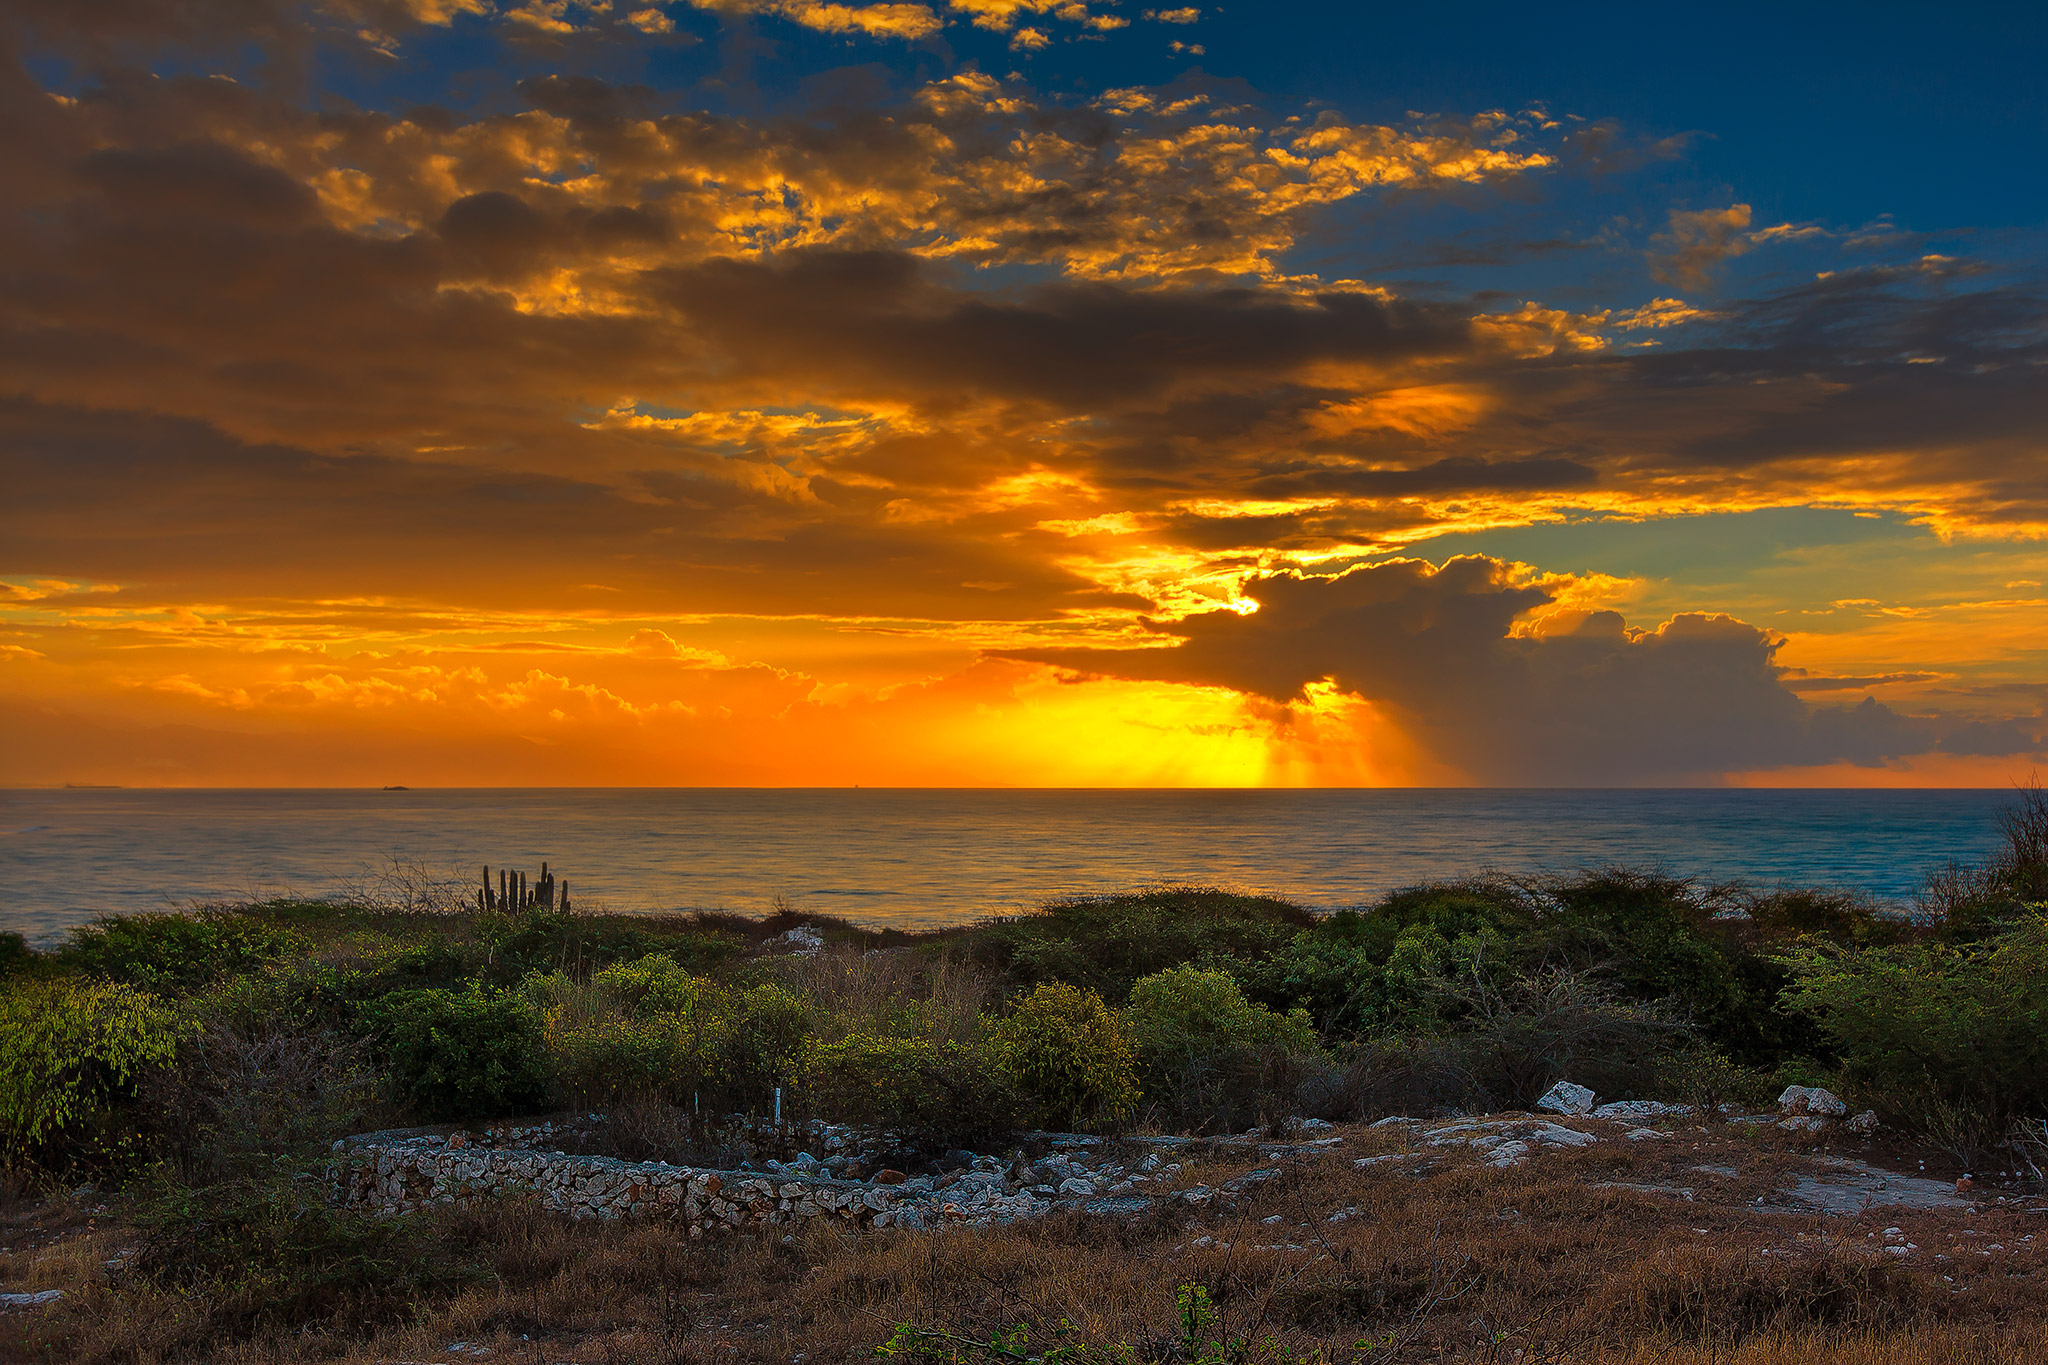 Sunrise view from Hellshire in St Catherine, Jamaica